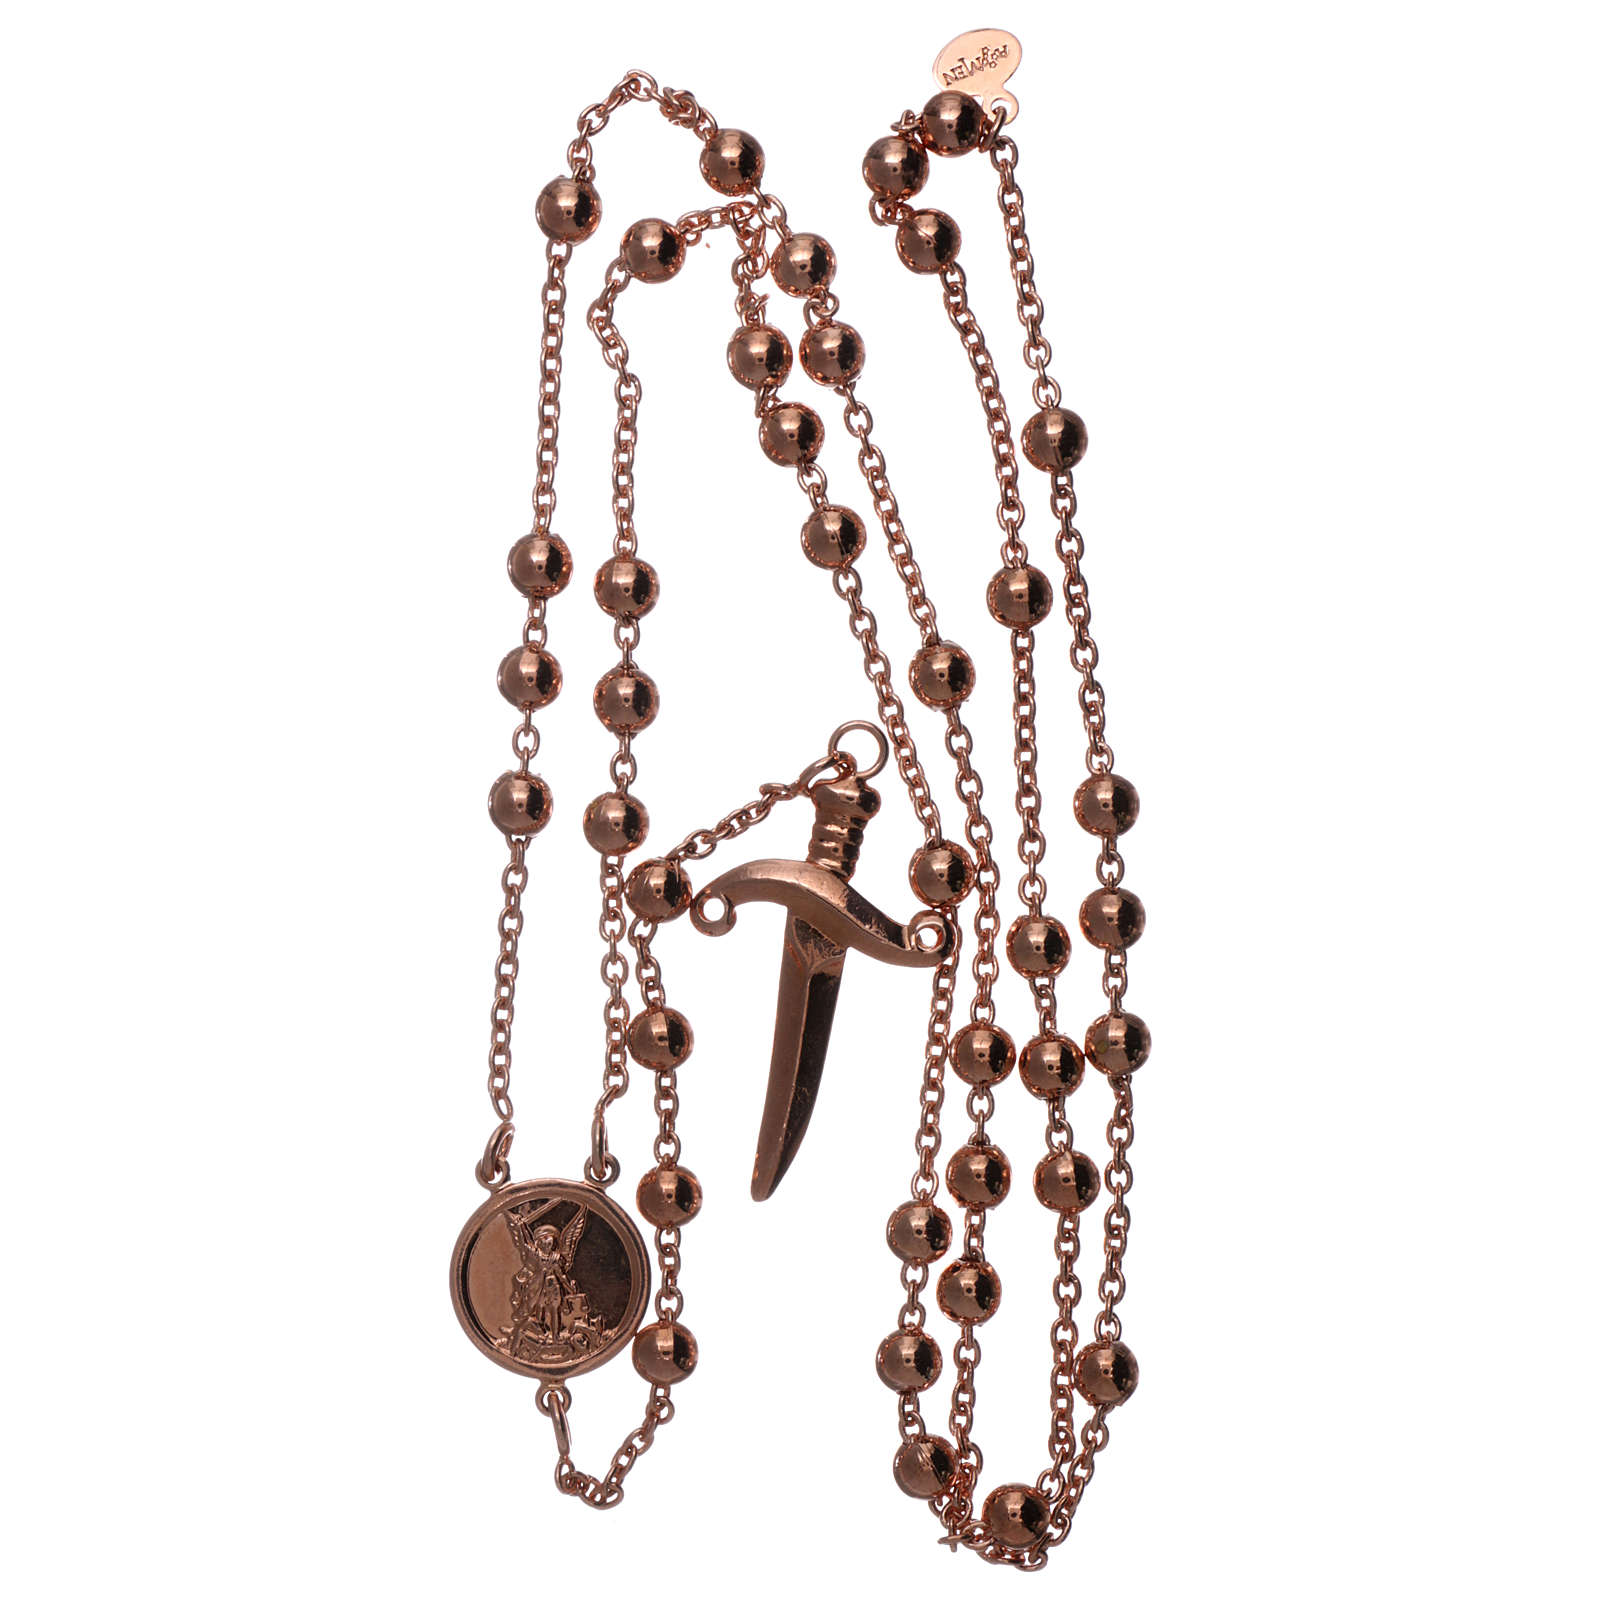 AMEN rosary bracelet Saint Micheal the Archangel in bronze finished in rosè 4